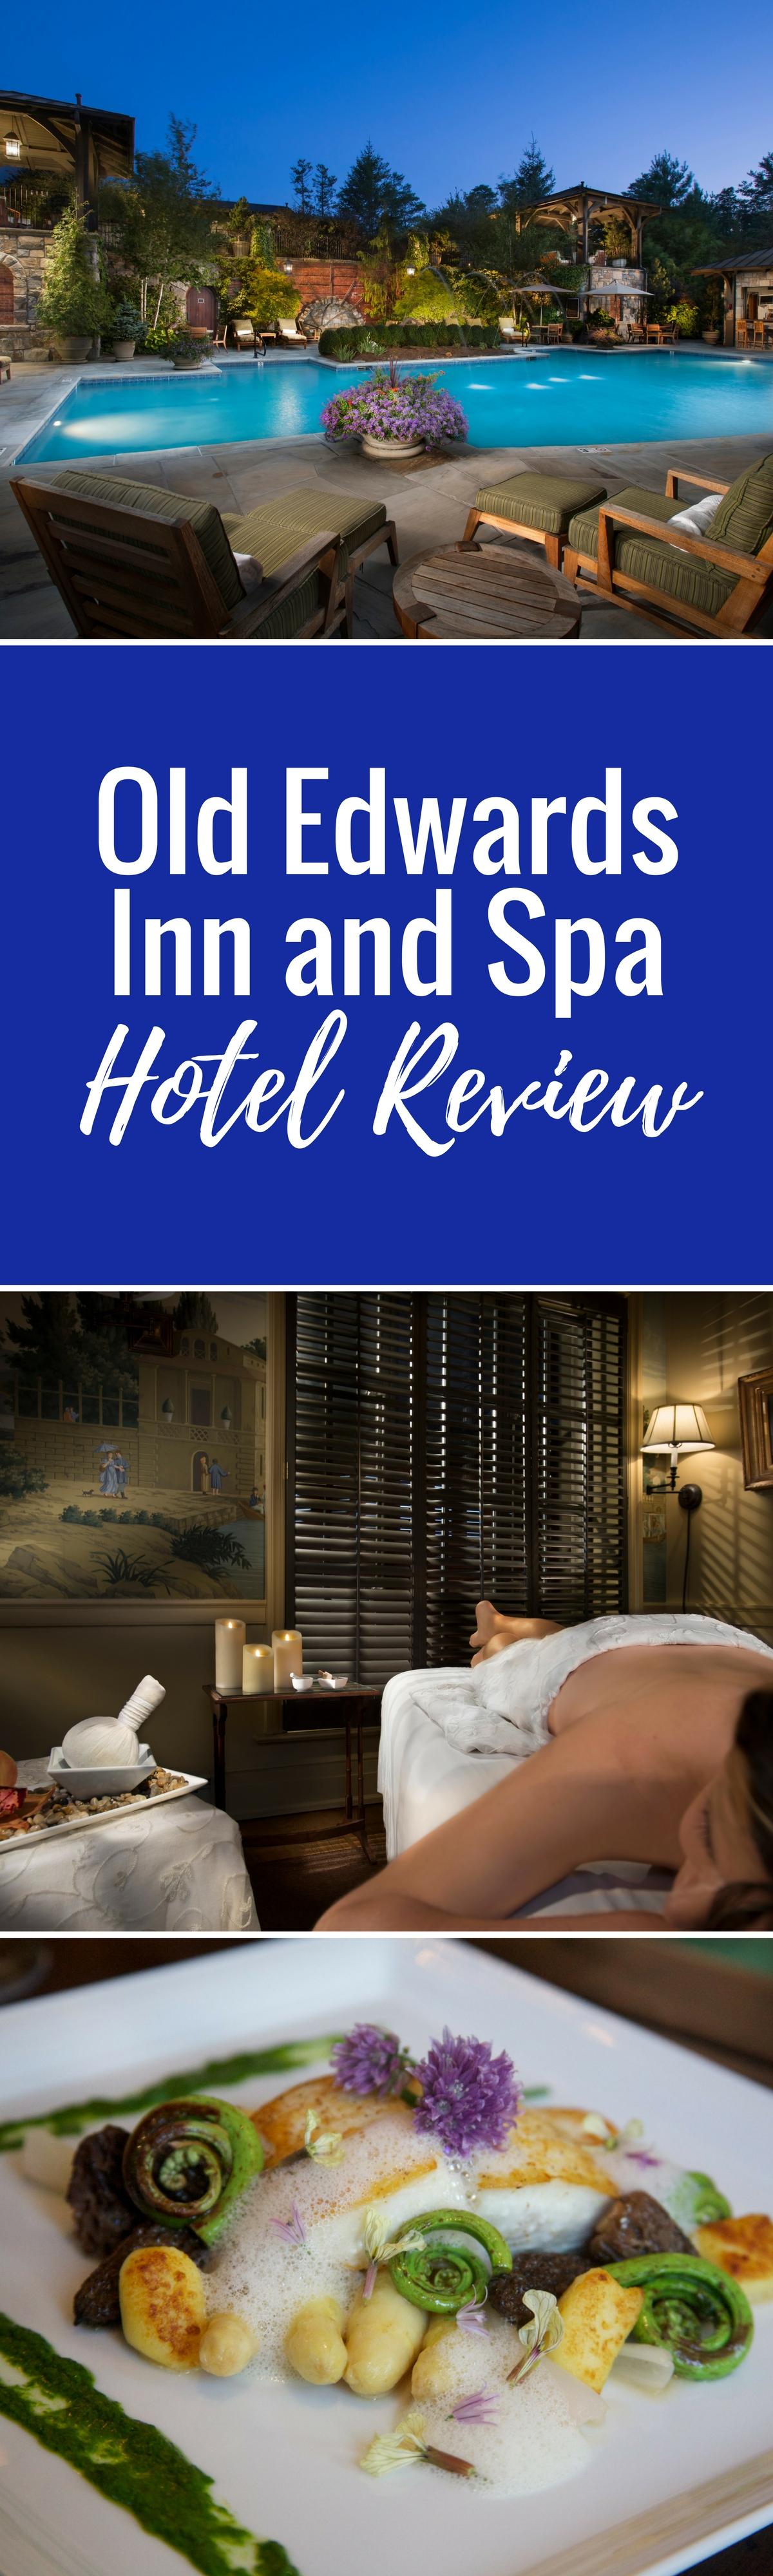 Old Edwards Inn and Spa in Highlands, North Carolina. Old Edwards Inn and Spa is the epitome of luxury and refinement. From an award-winning spa to an award-winning restaurant and many other accolades, Old Edwards is a gourmand worthy hotel.